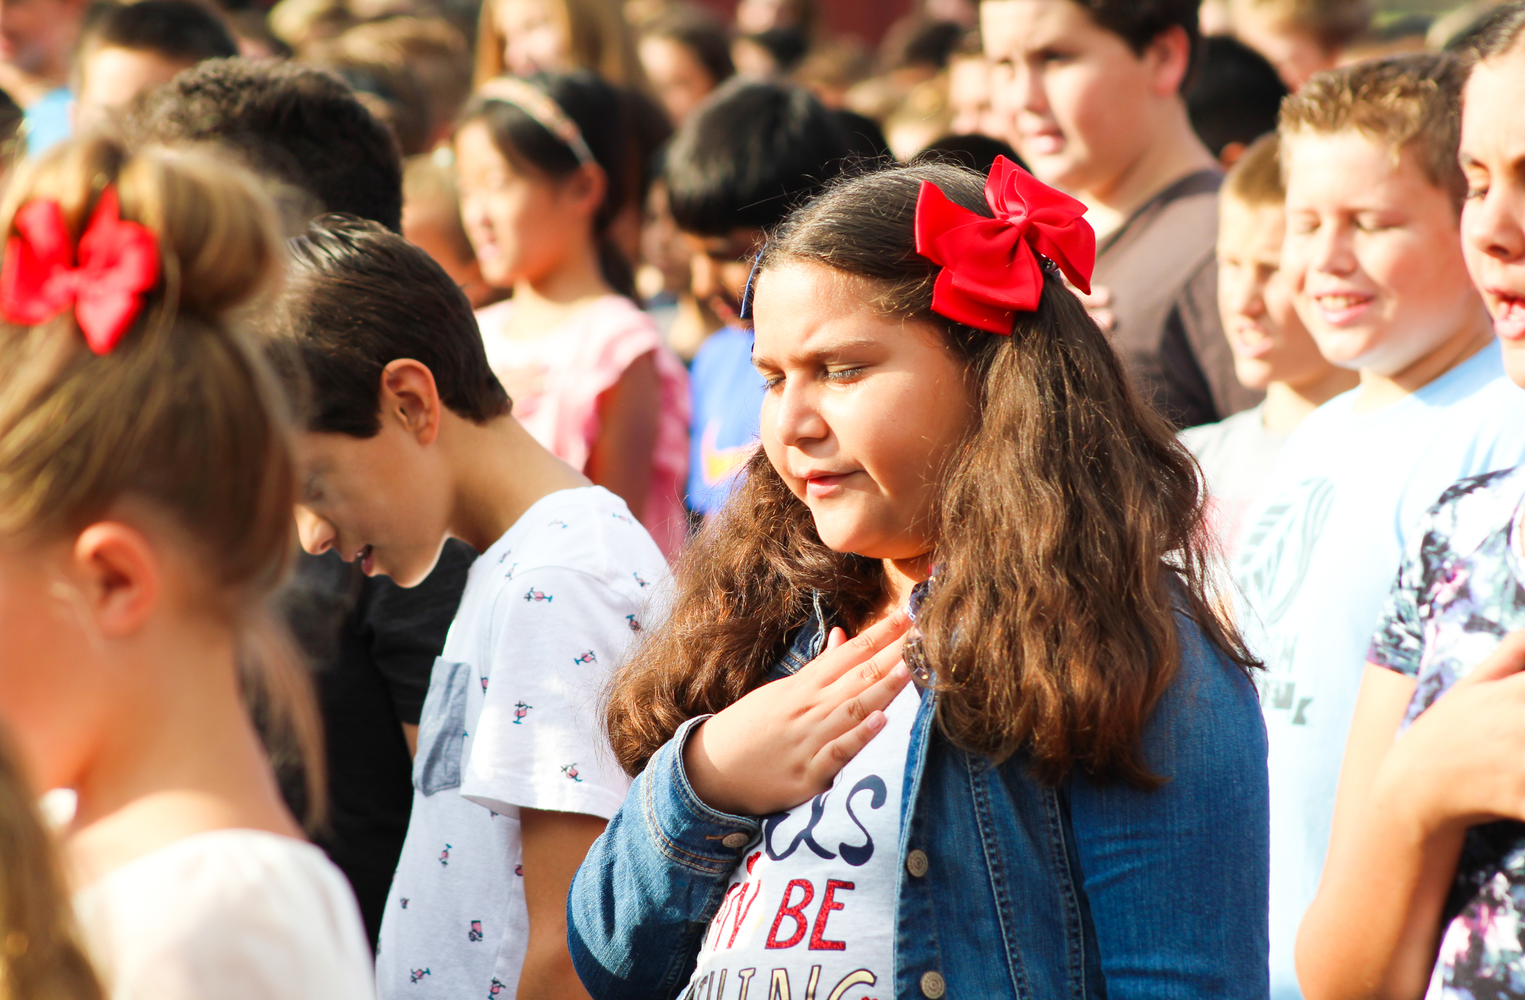 A student reciting the Pledge of Allegiance.